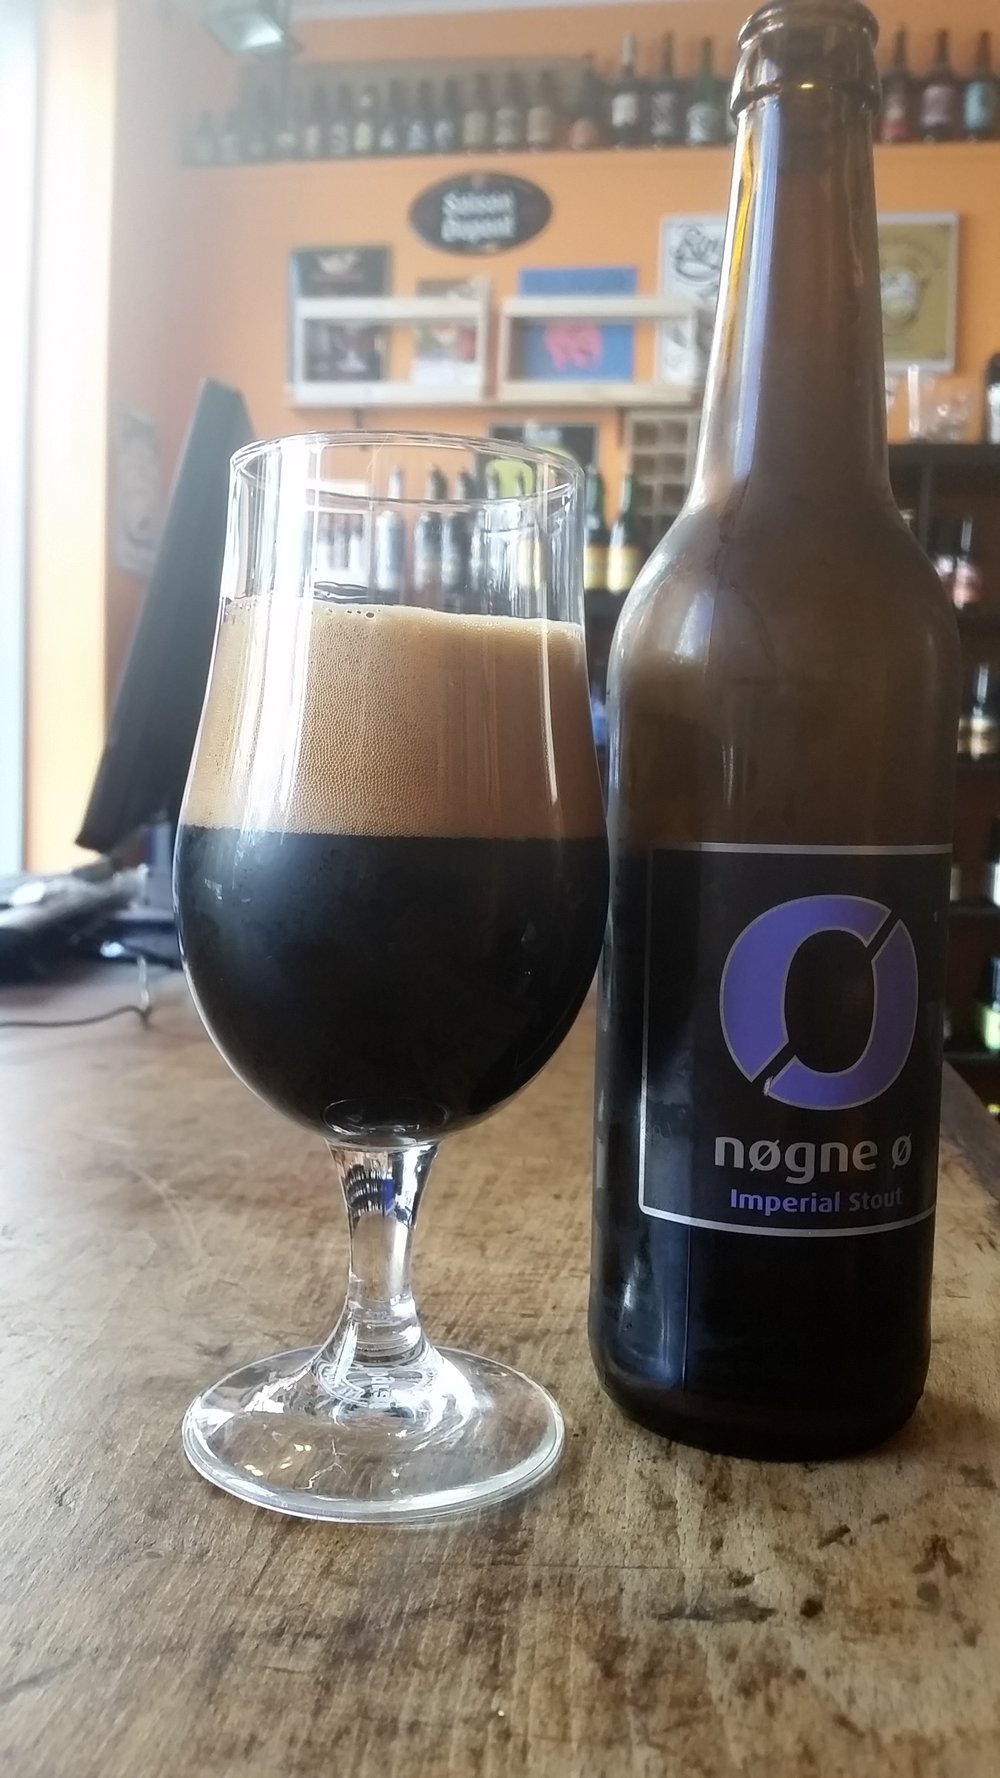 nogne-o-imperial stout